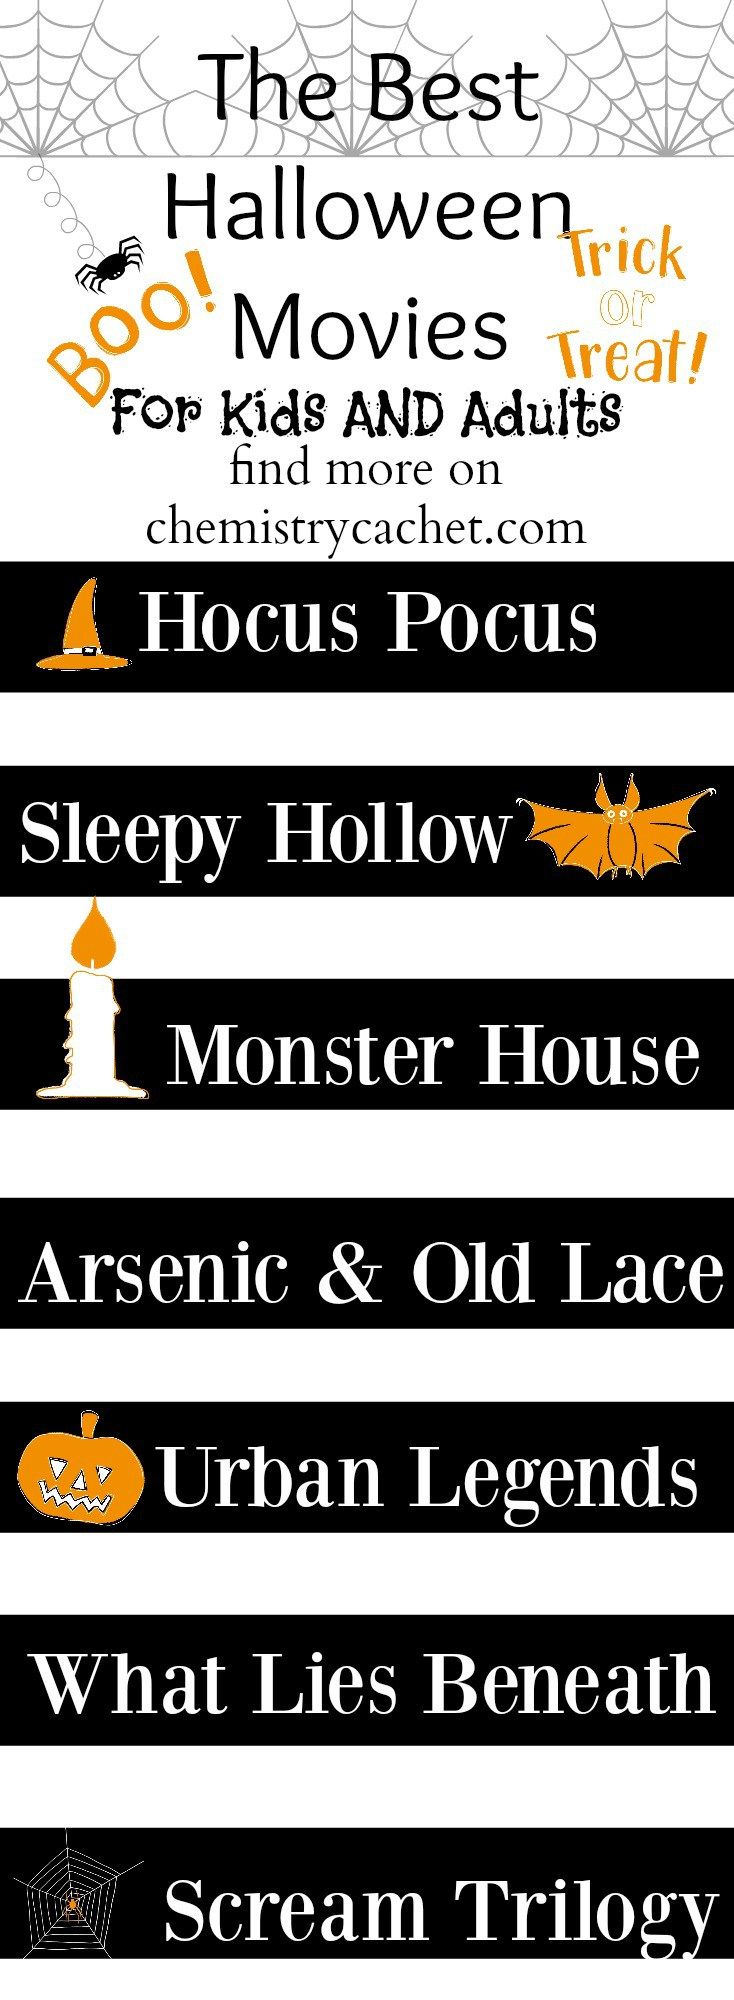 The best Halloween movies for kids and adults. Halloween movies for the family…